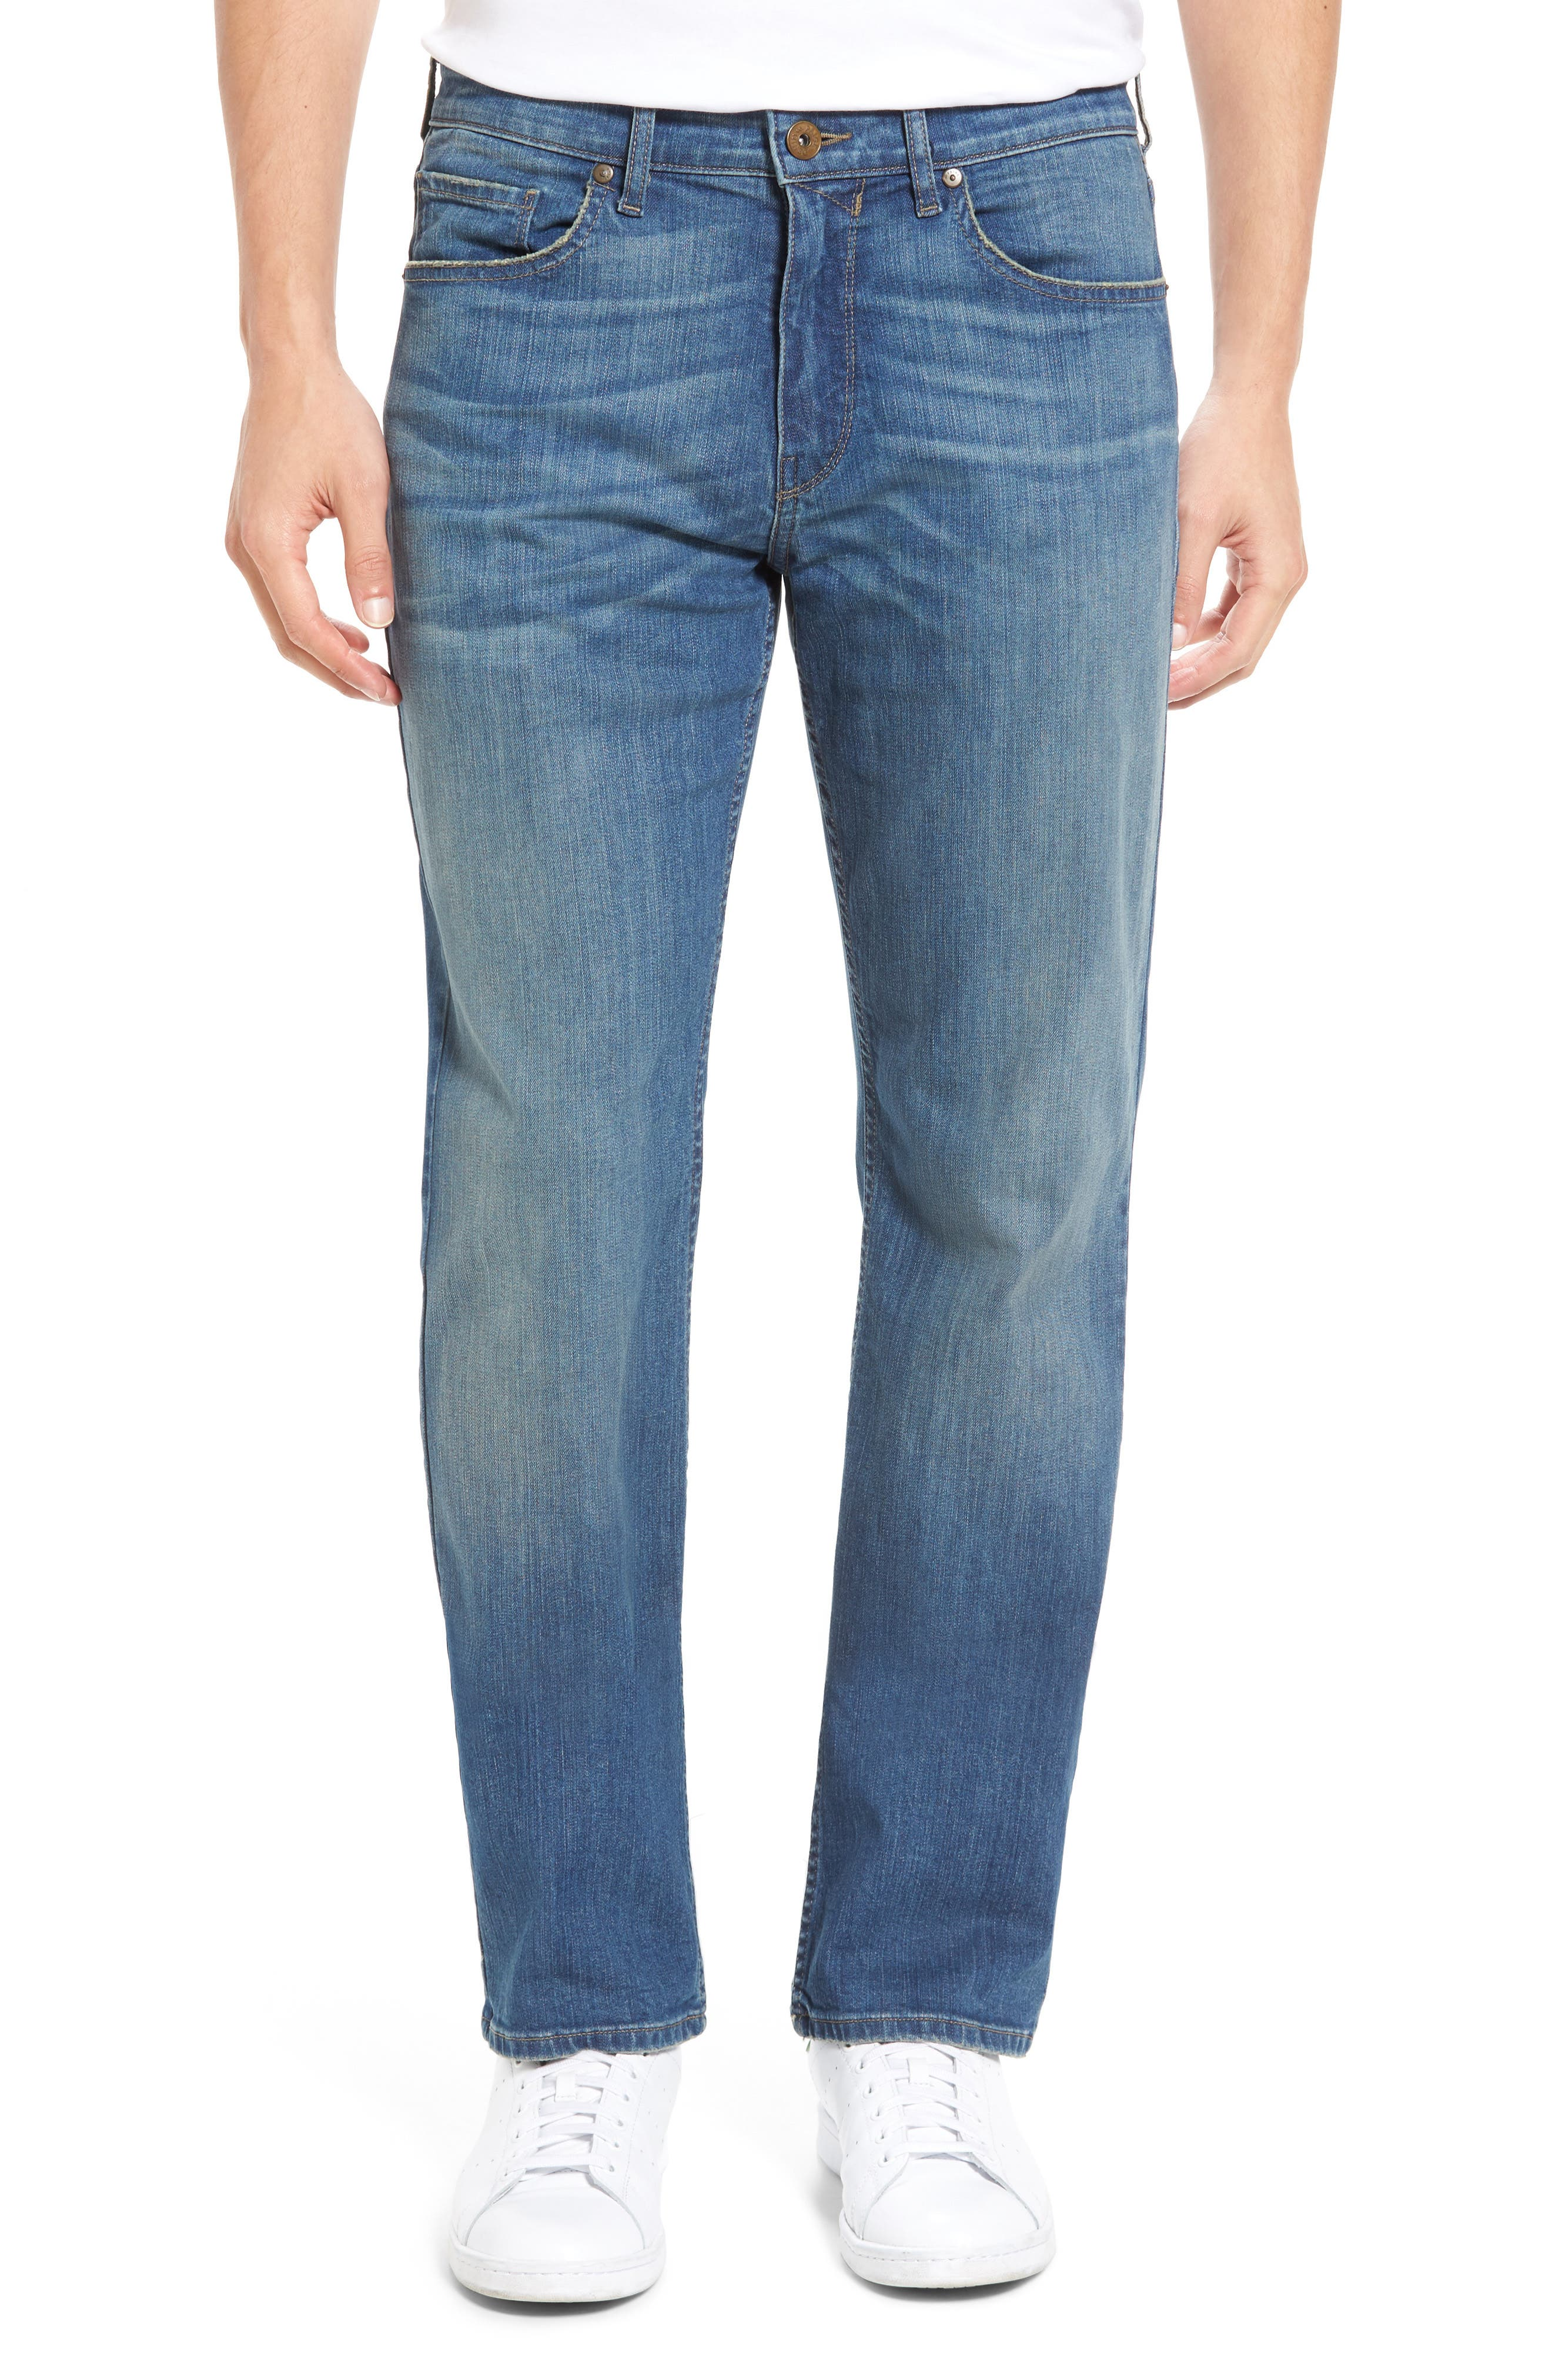 Legacy - Doheny Relaxed Fit Jeans,                             Main thumbnail 1, color,                             400